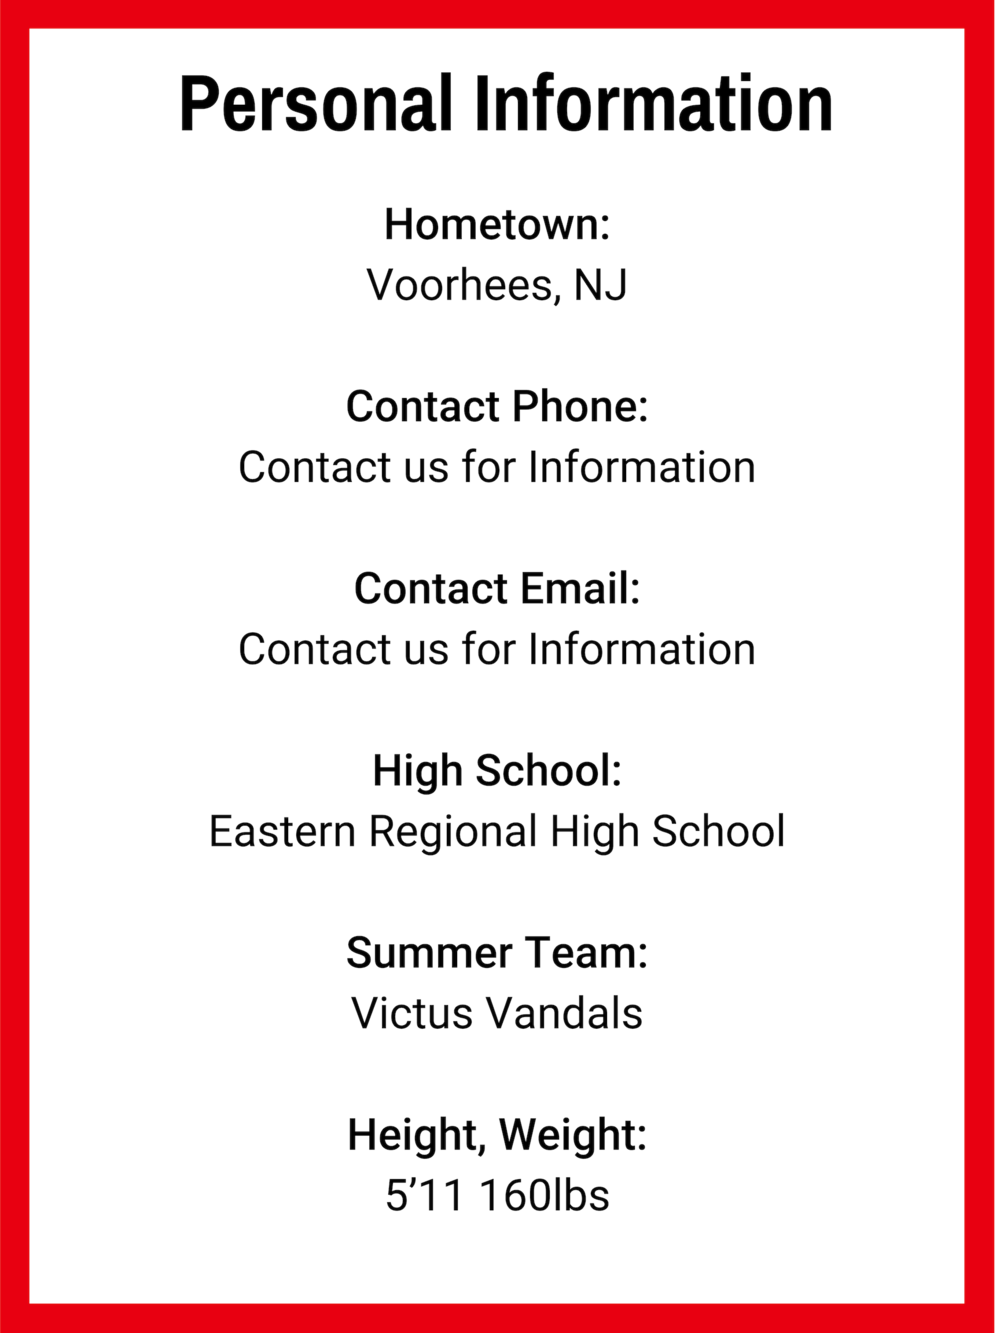 Hometown_ Voorhees, NJ Contact Phone_ Contact us for Information Contact Email_ Contact us for Information High School_ Eastern Regional High School Summer Team_ Victus Vandals Height, Weight_ 5'11 160lbs (1).png